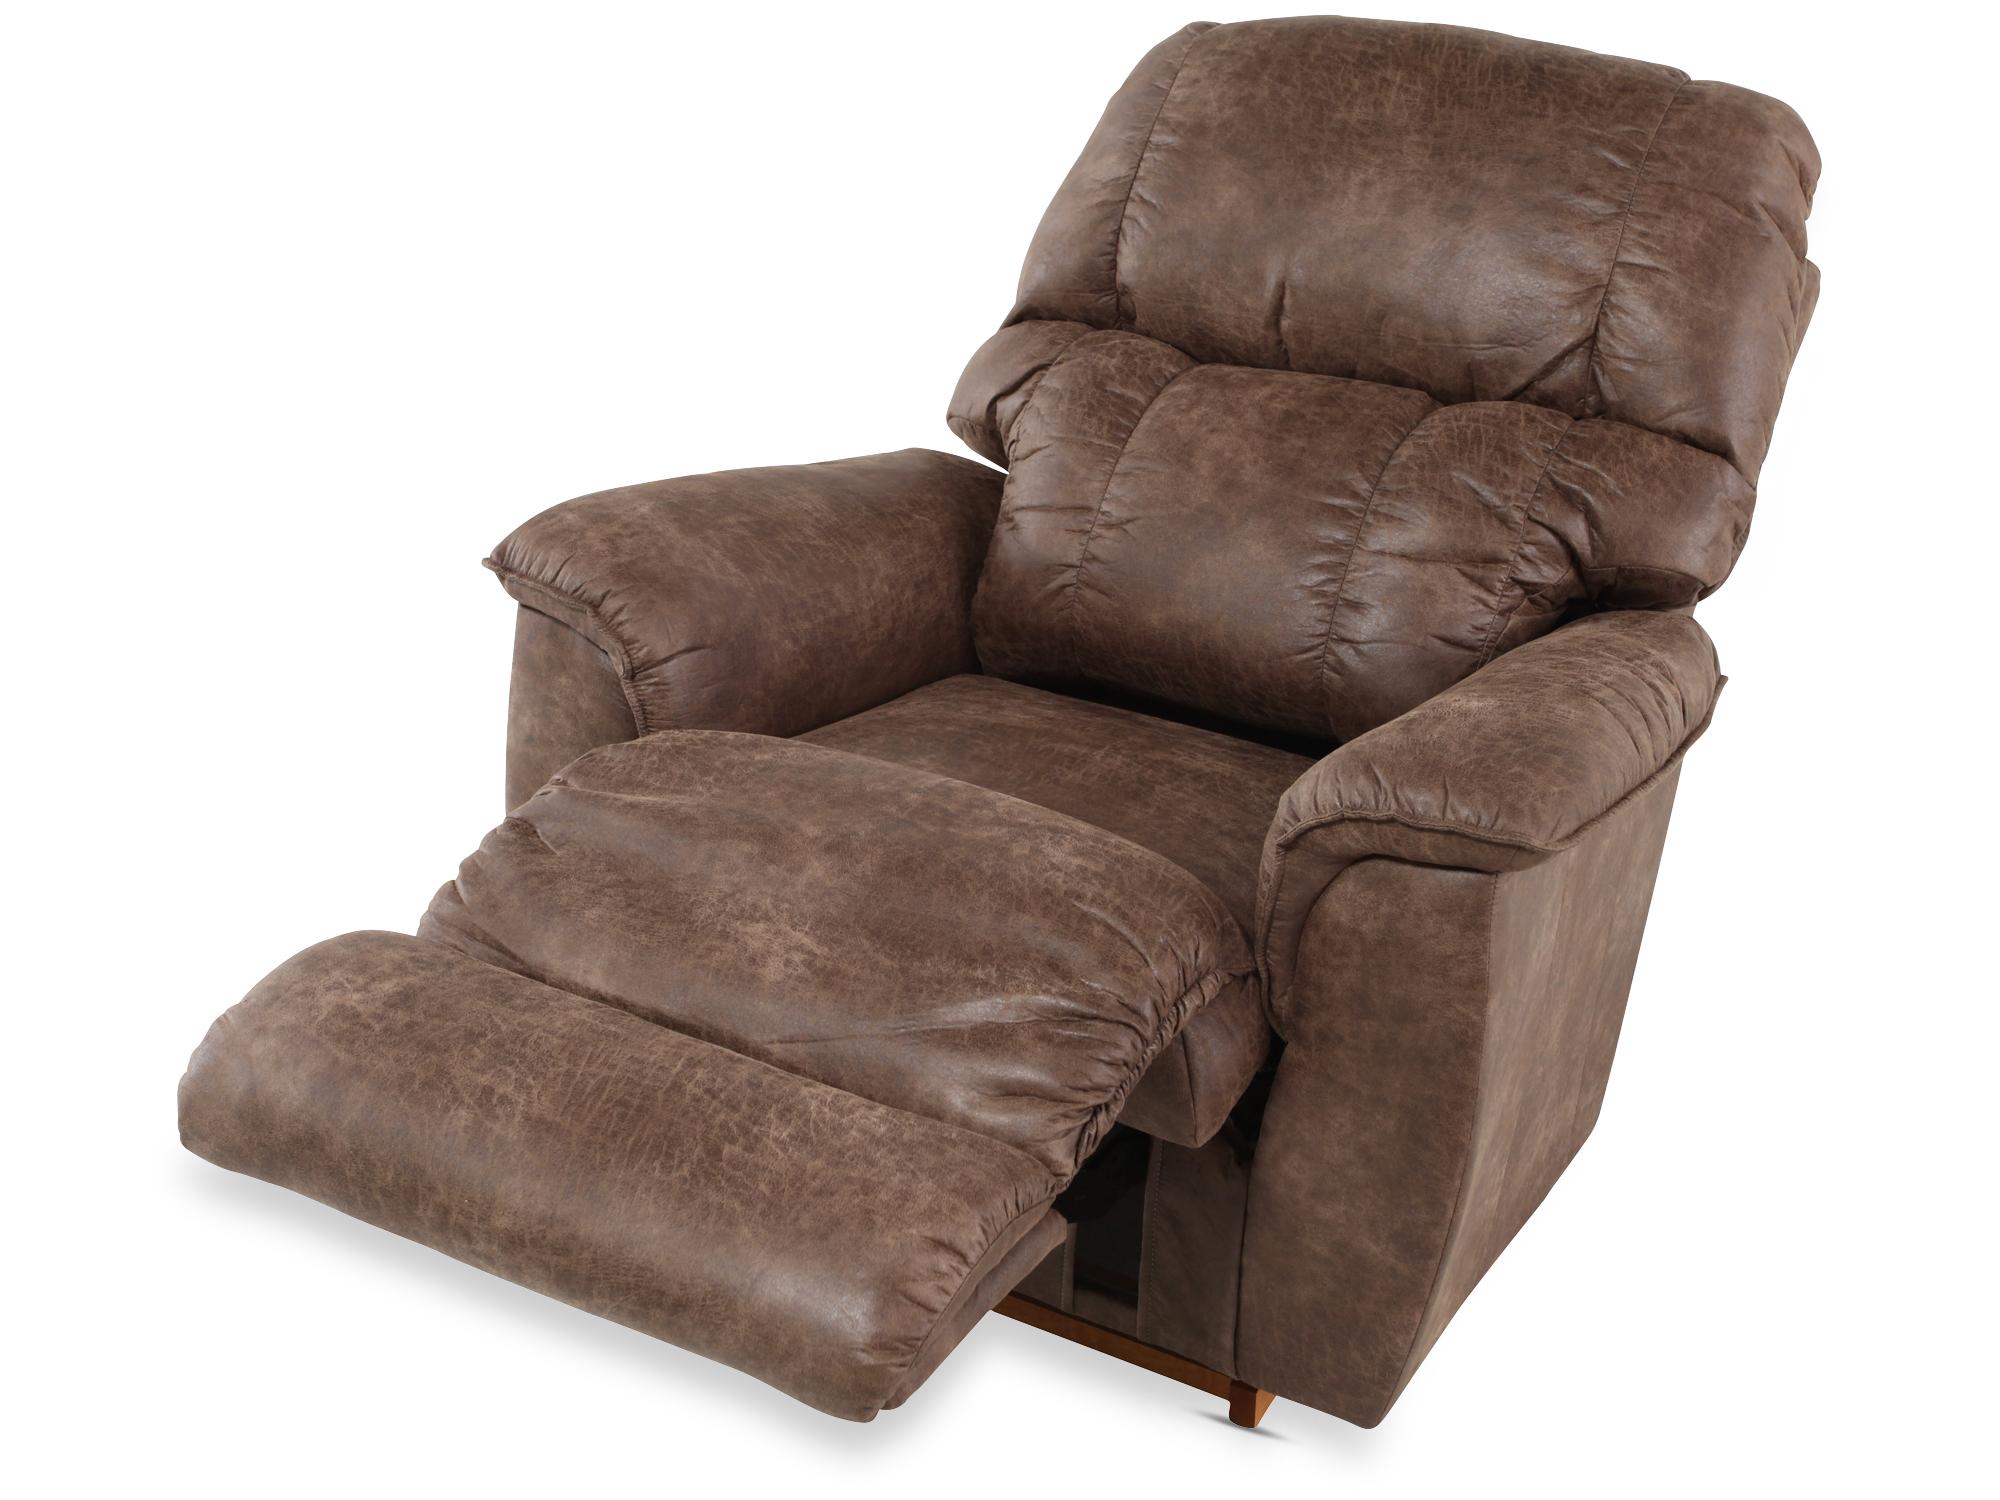 Search for an oversized recliner or double recliner, even a dual reclining loveseat could work. Style is just as important as comfort when it comes to picking out a modern recliner—that's why you shop at Ashley HomeStore to see all the newest features available in recliners in .